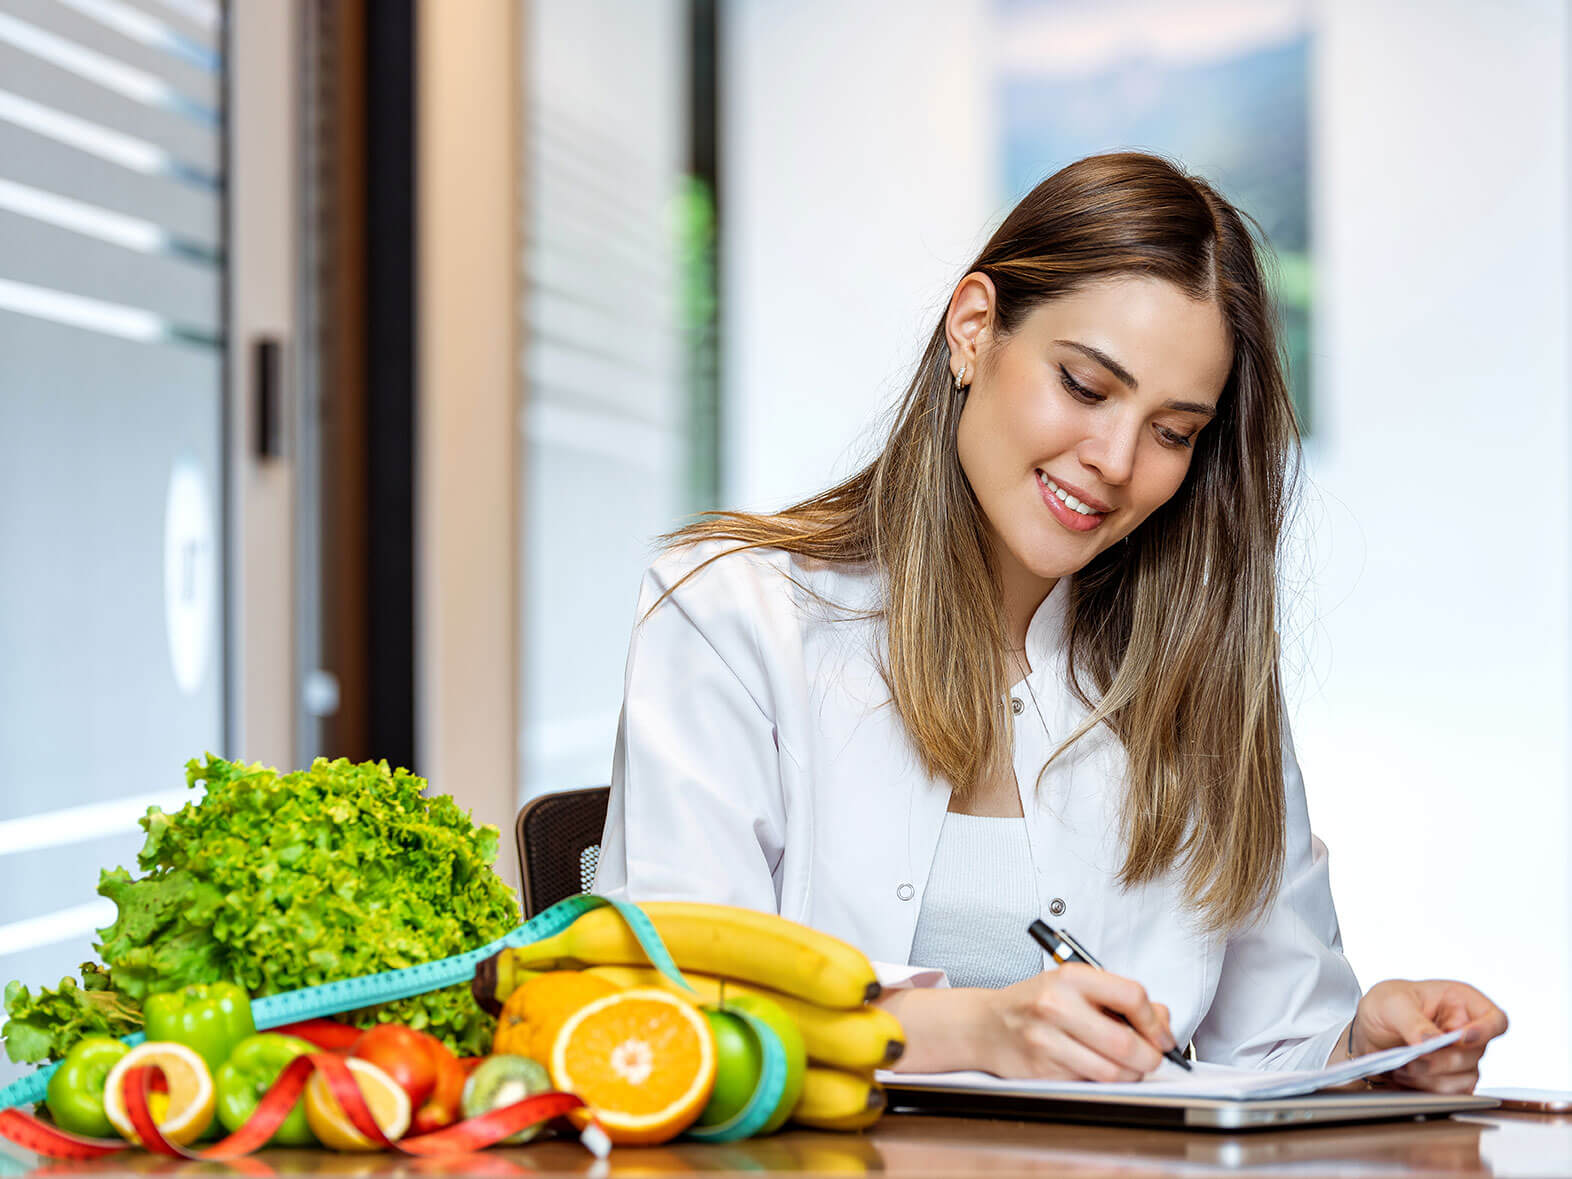 IBT Medicare Wellness | A dietician writing on a table with fruits and veggies.